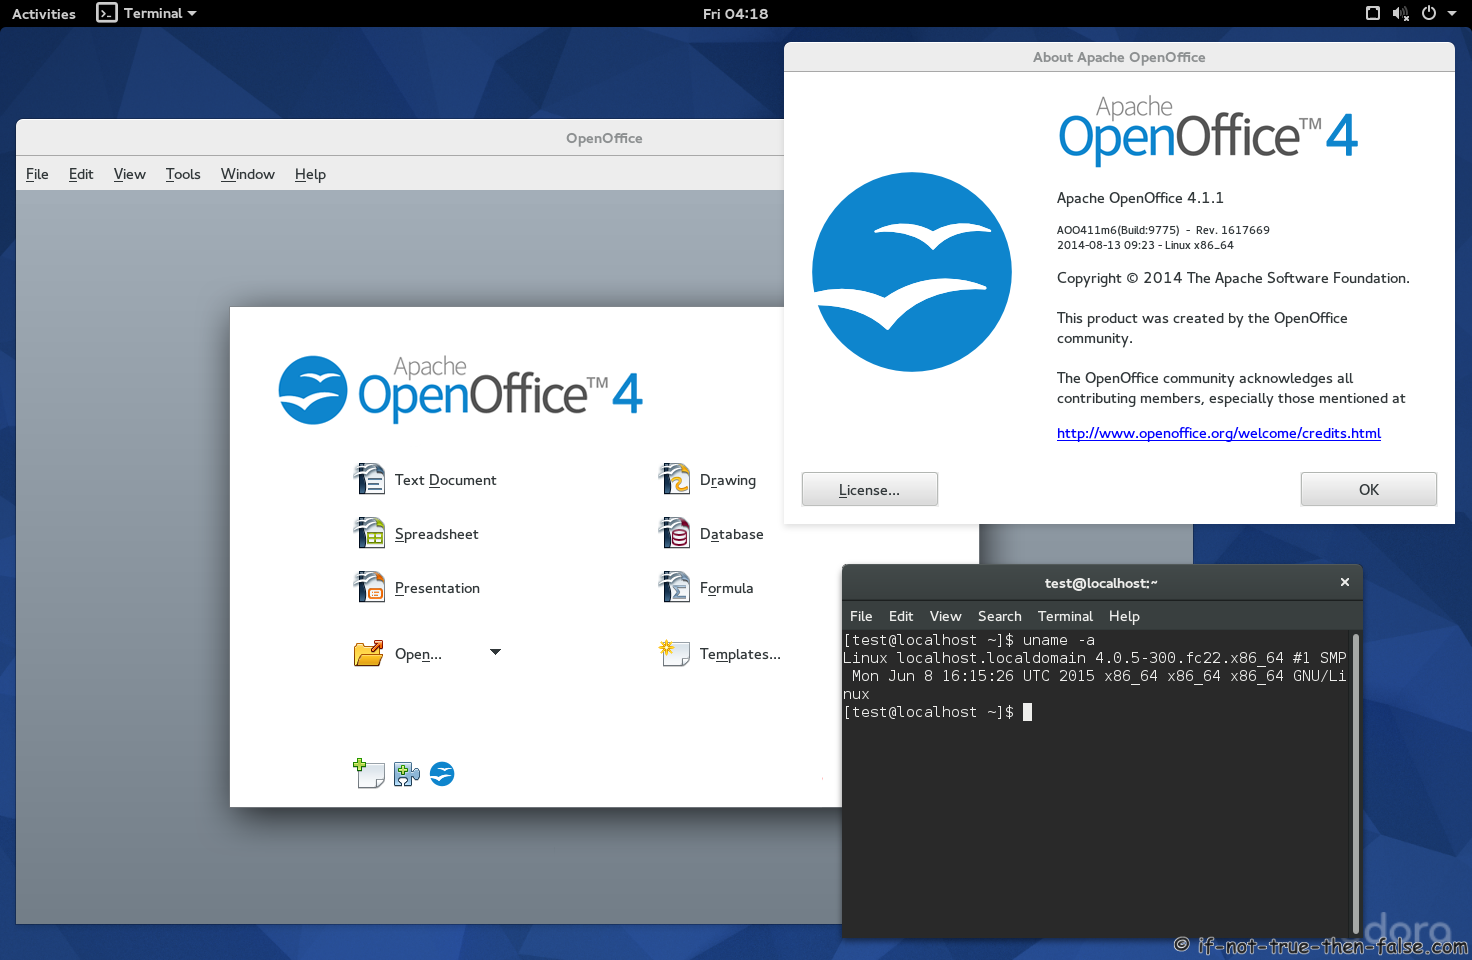 Apache OpenOffice 4.1.1 on Fedora 22